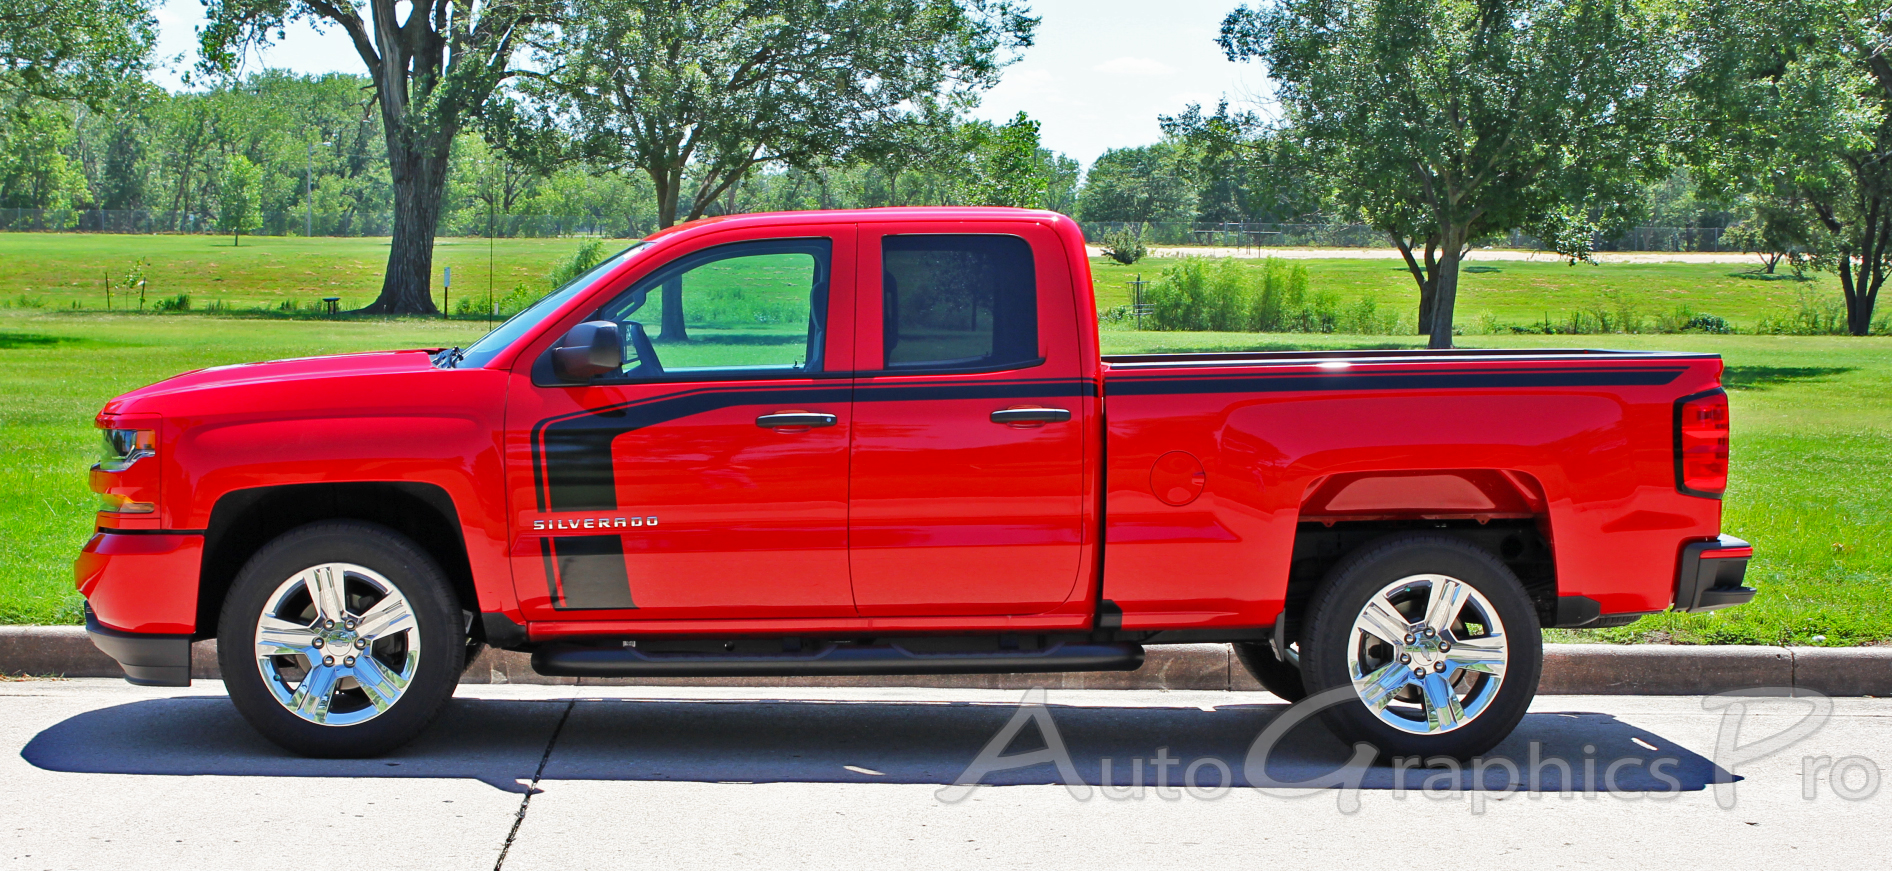 4c660e4195 2016 2017 2018 Chevy Silverado Special Edition Stripes FLOW Rally Decals  Truck Hood and Side Door Vinyl Graphics Kit